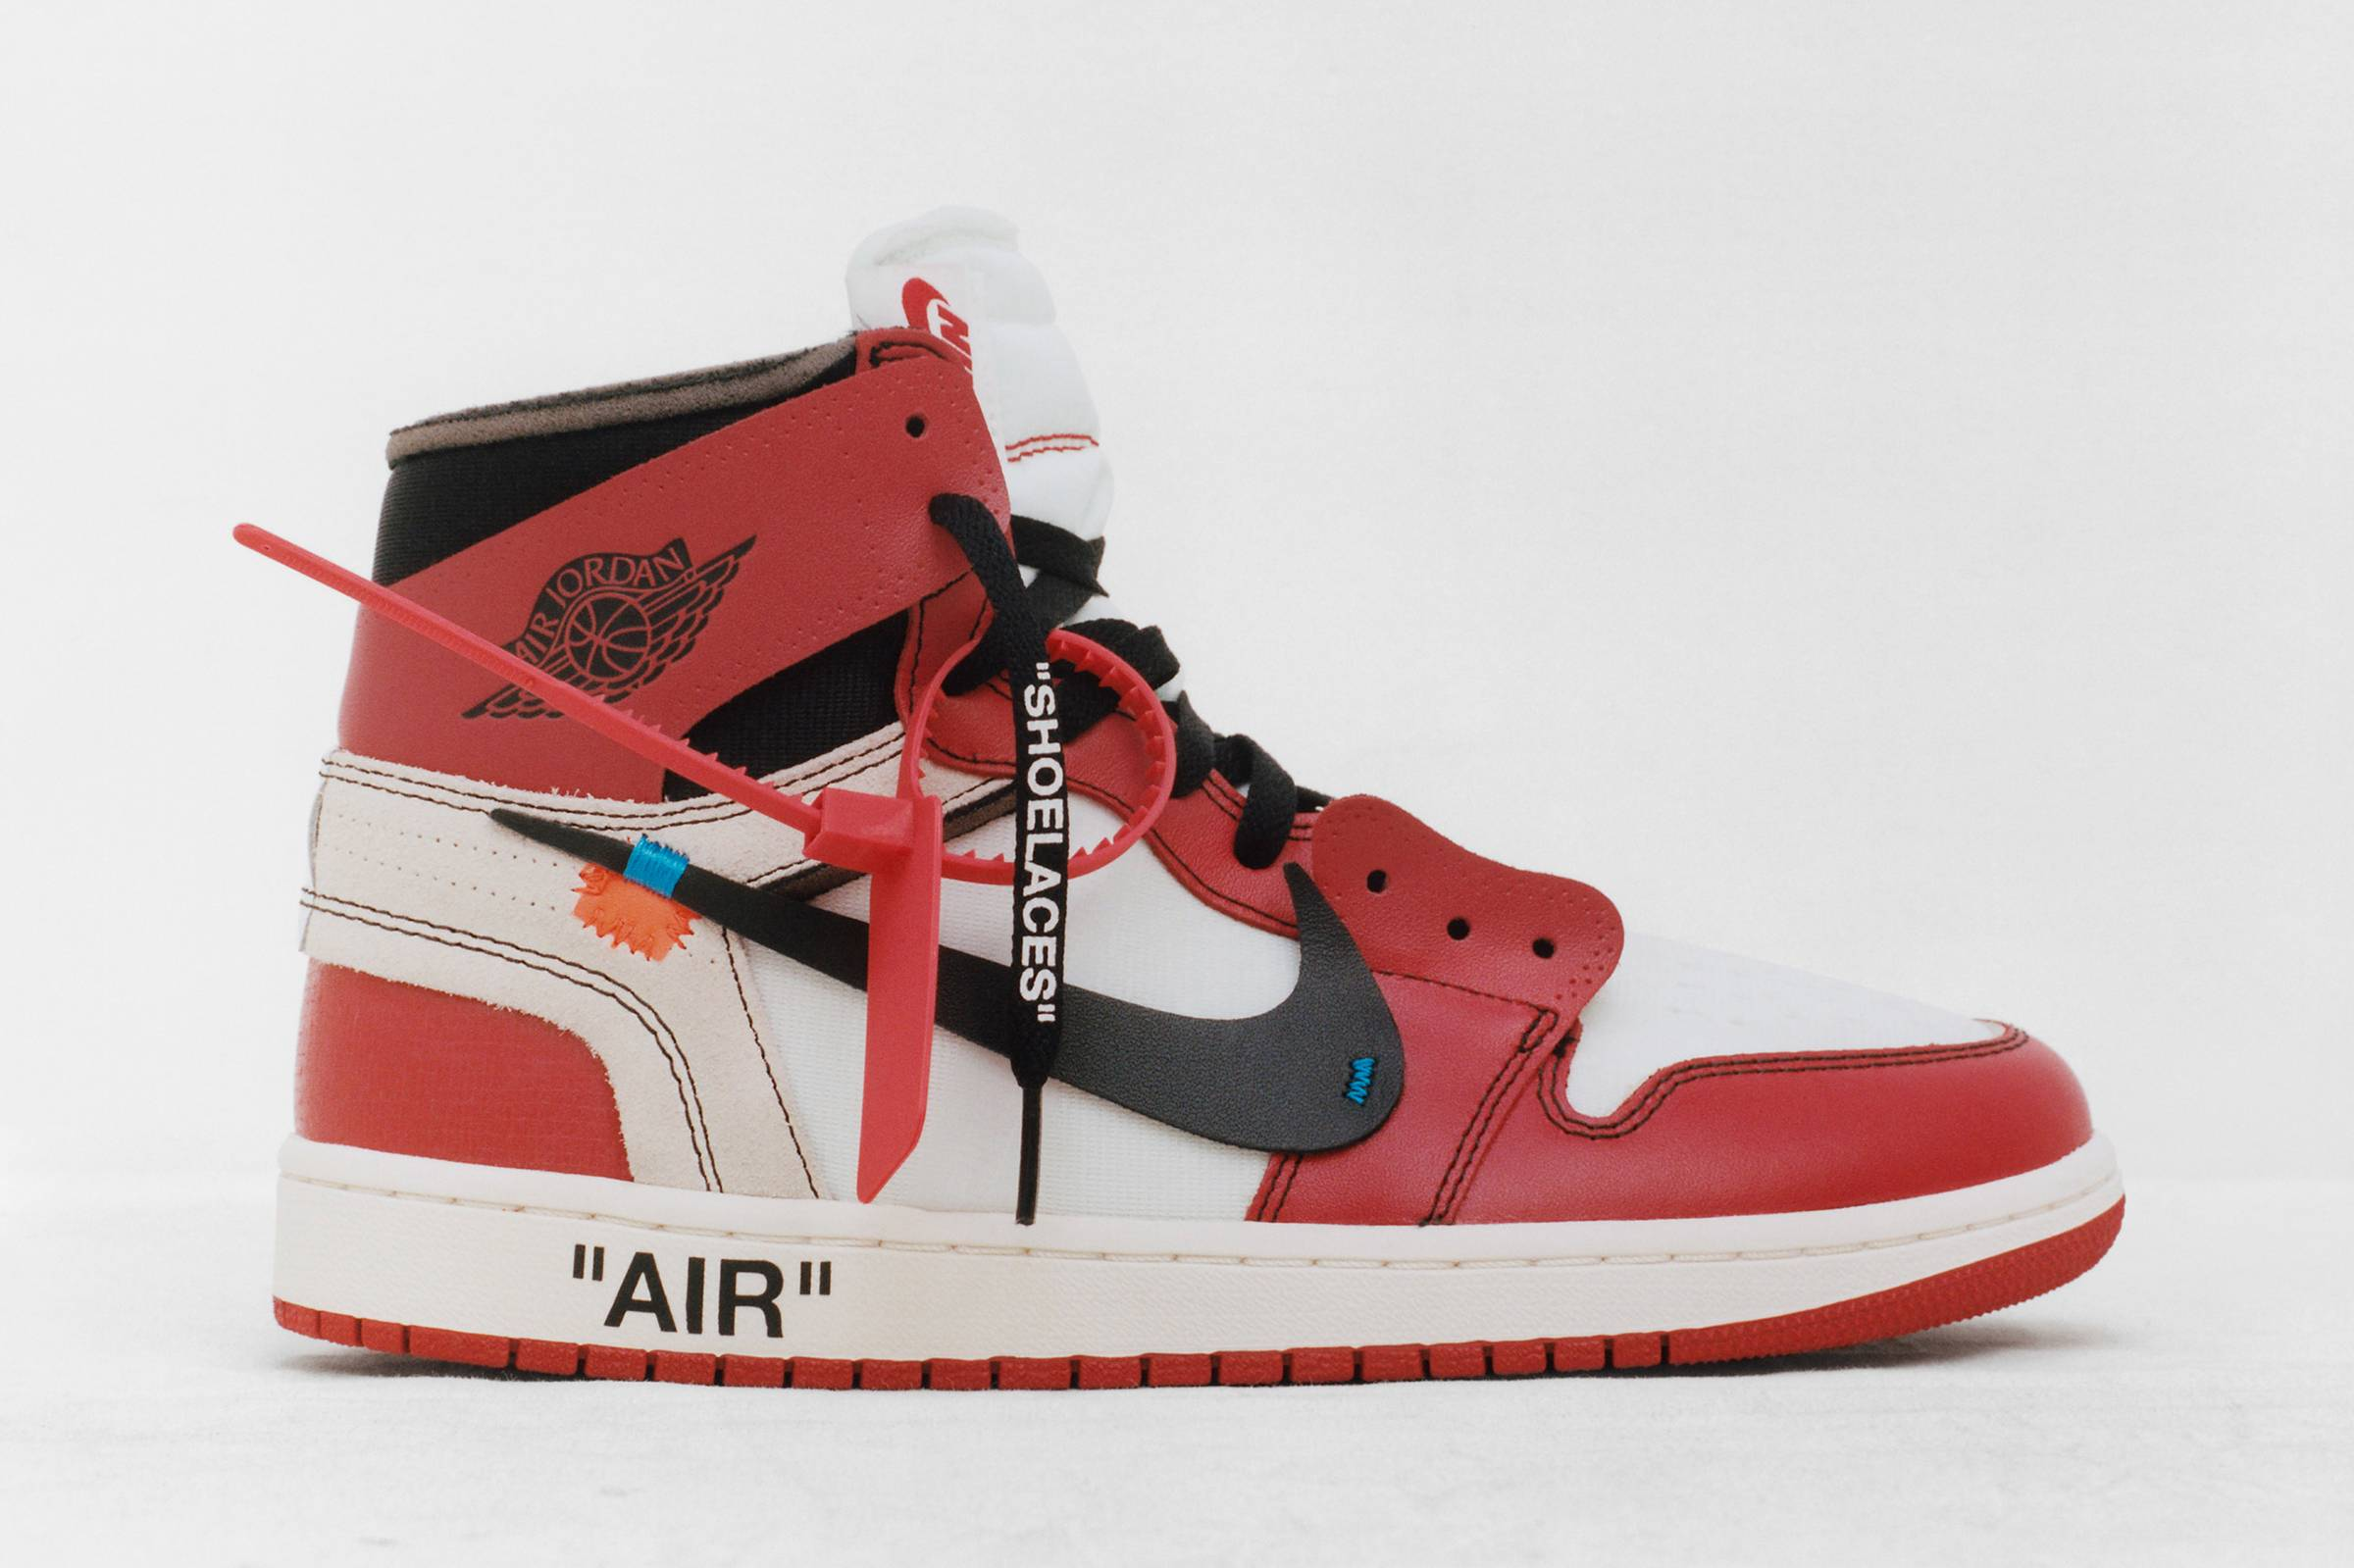 quality design c0b28 a021a Off-White x Nike Jordan 1